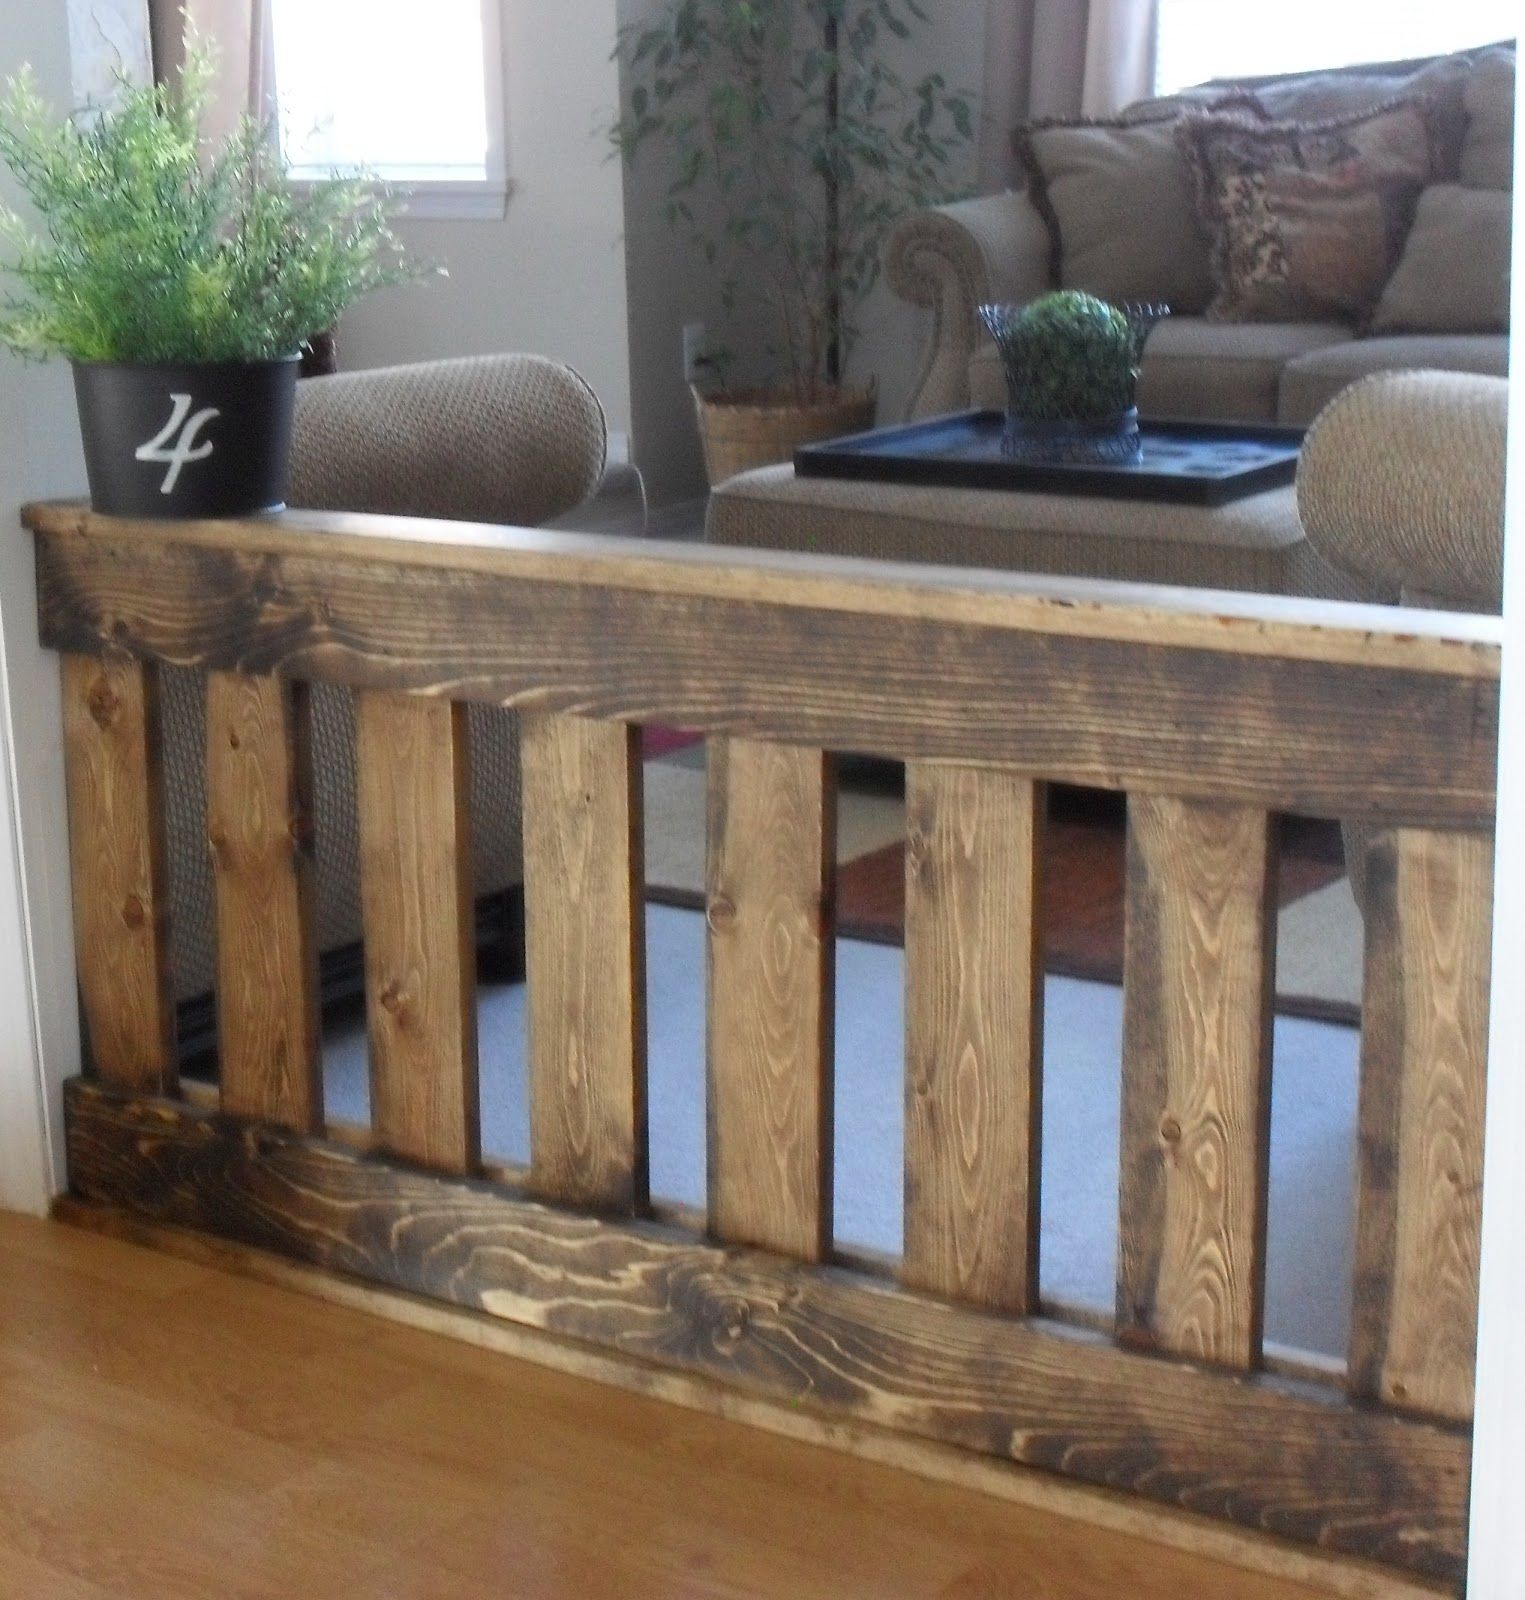 No Tutorial But Very Cool Idea To Replace Ugly Baby Gates.